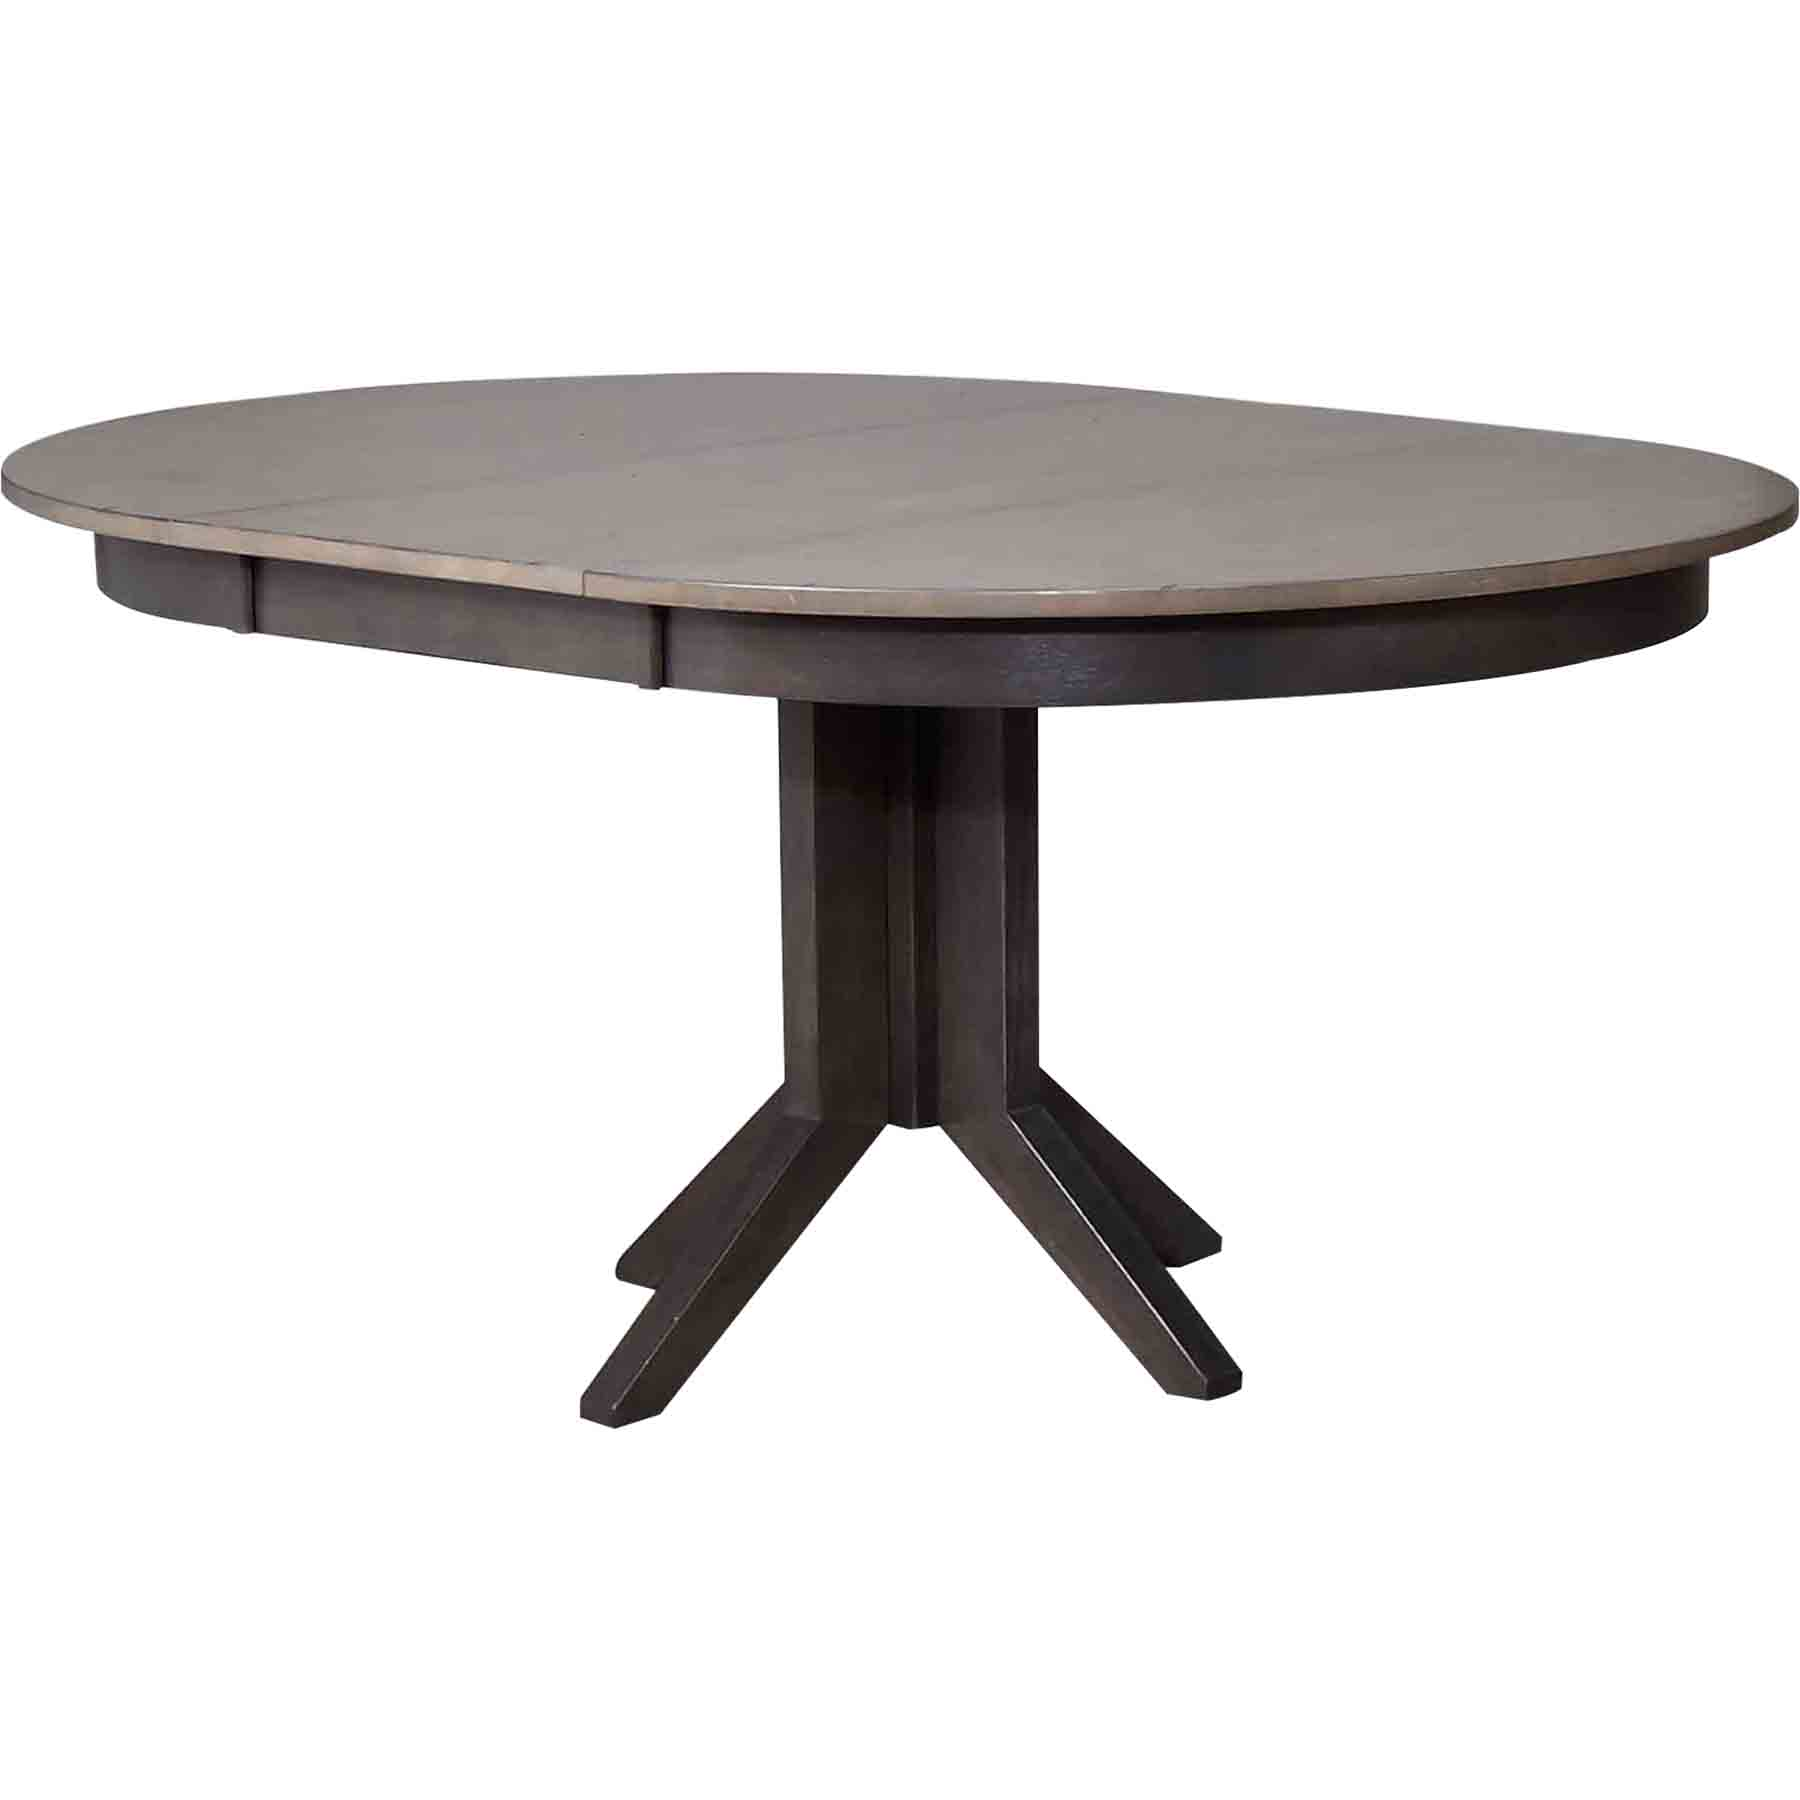 Round contemporary dining table gray stone and black for Contemporary round dining table